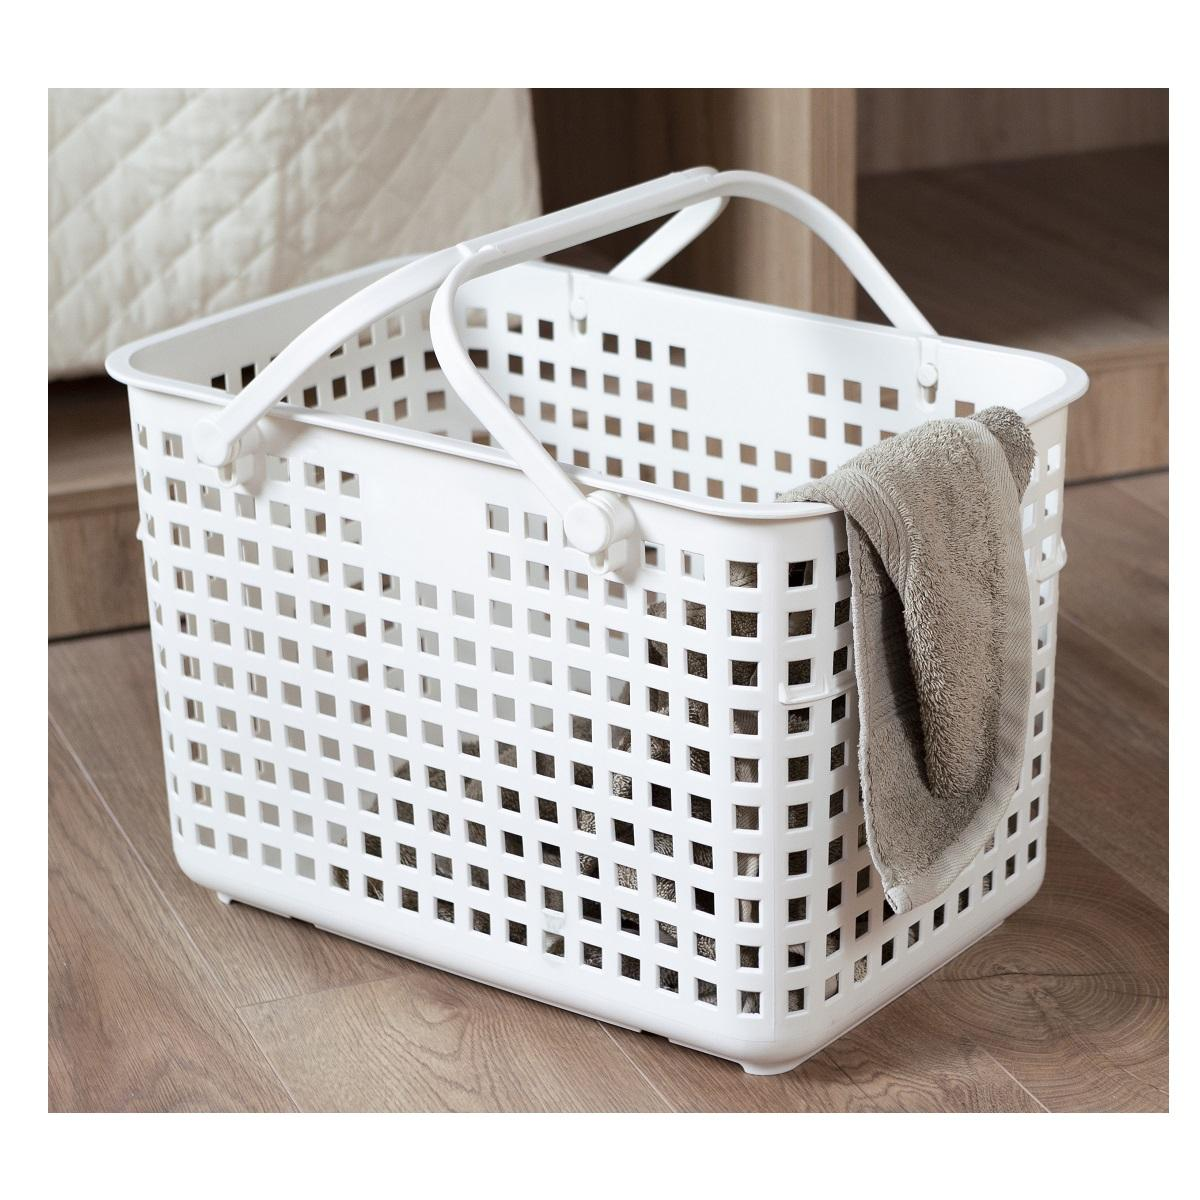 Inochi White Basket With Middle Hand Plastic Suitable For House Cool Product From Vietnam